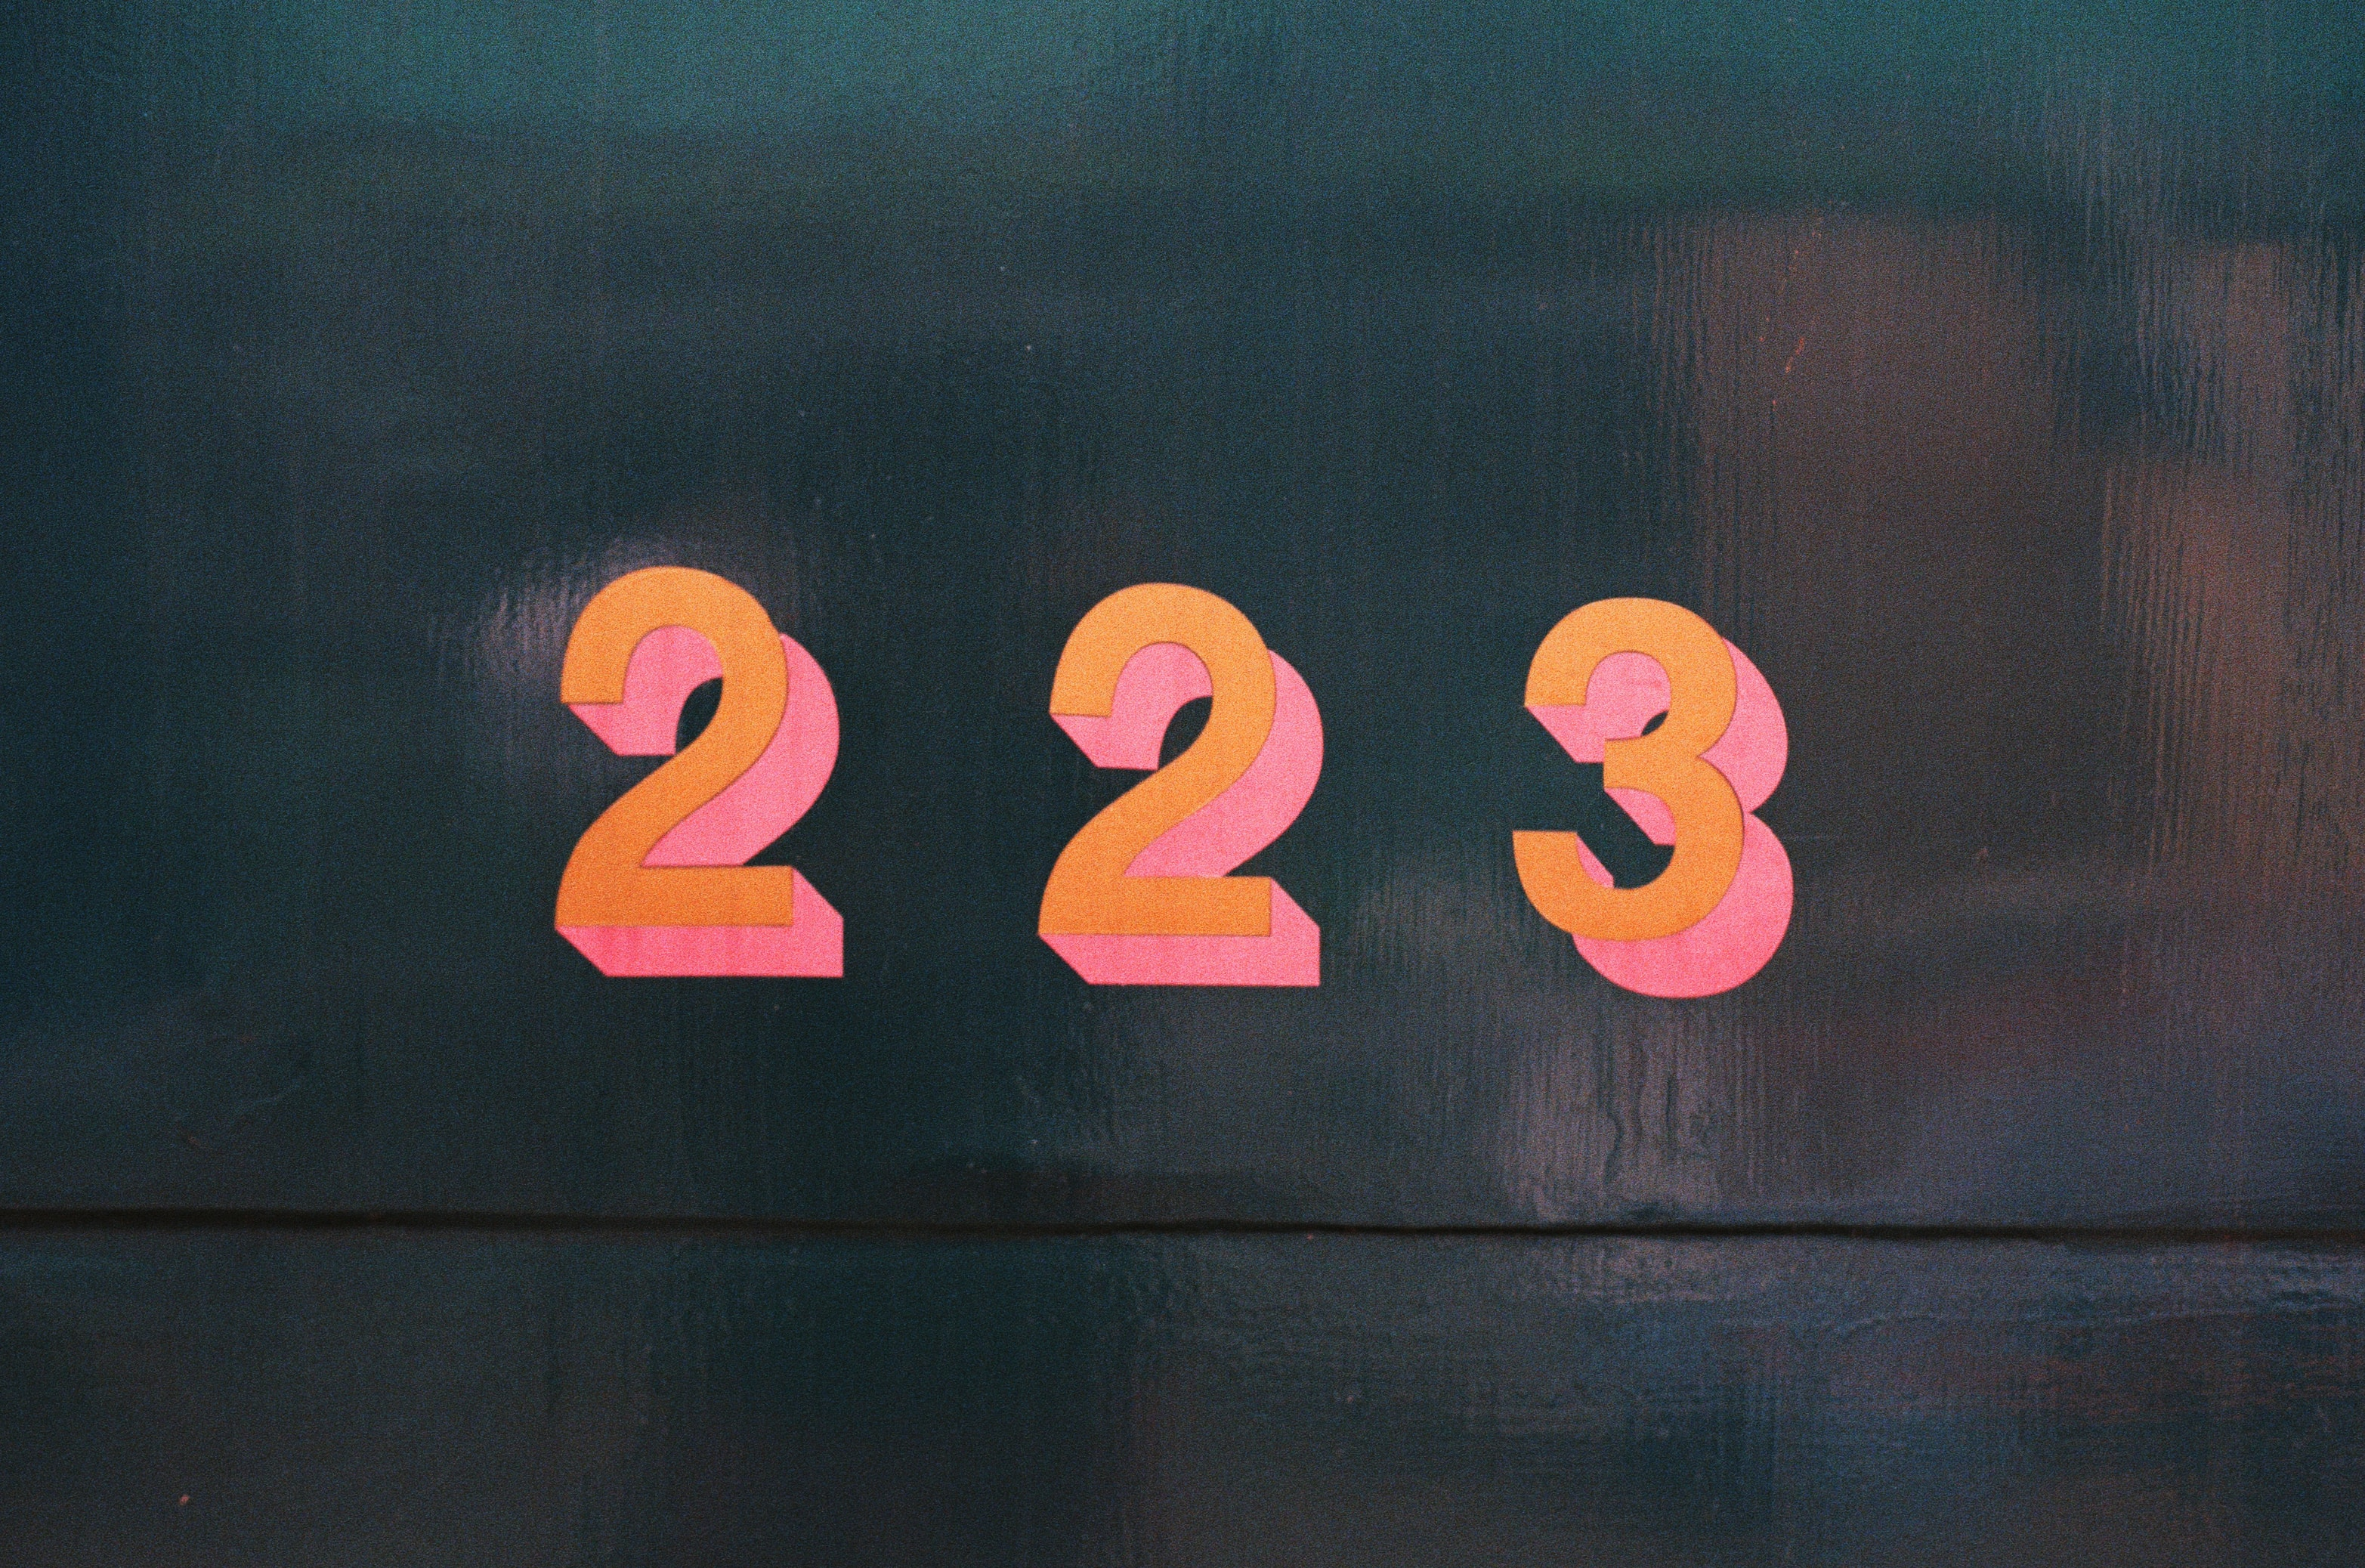 How To Convert Recurring Decimals To Fractions (Step-By-Step)